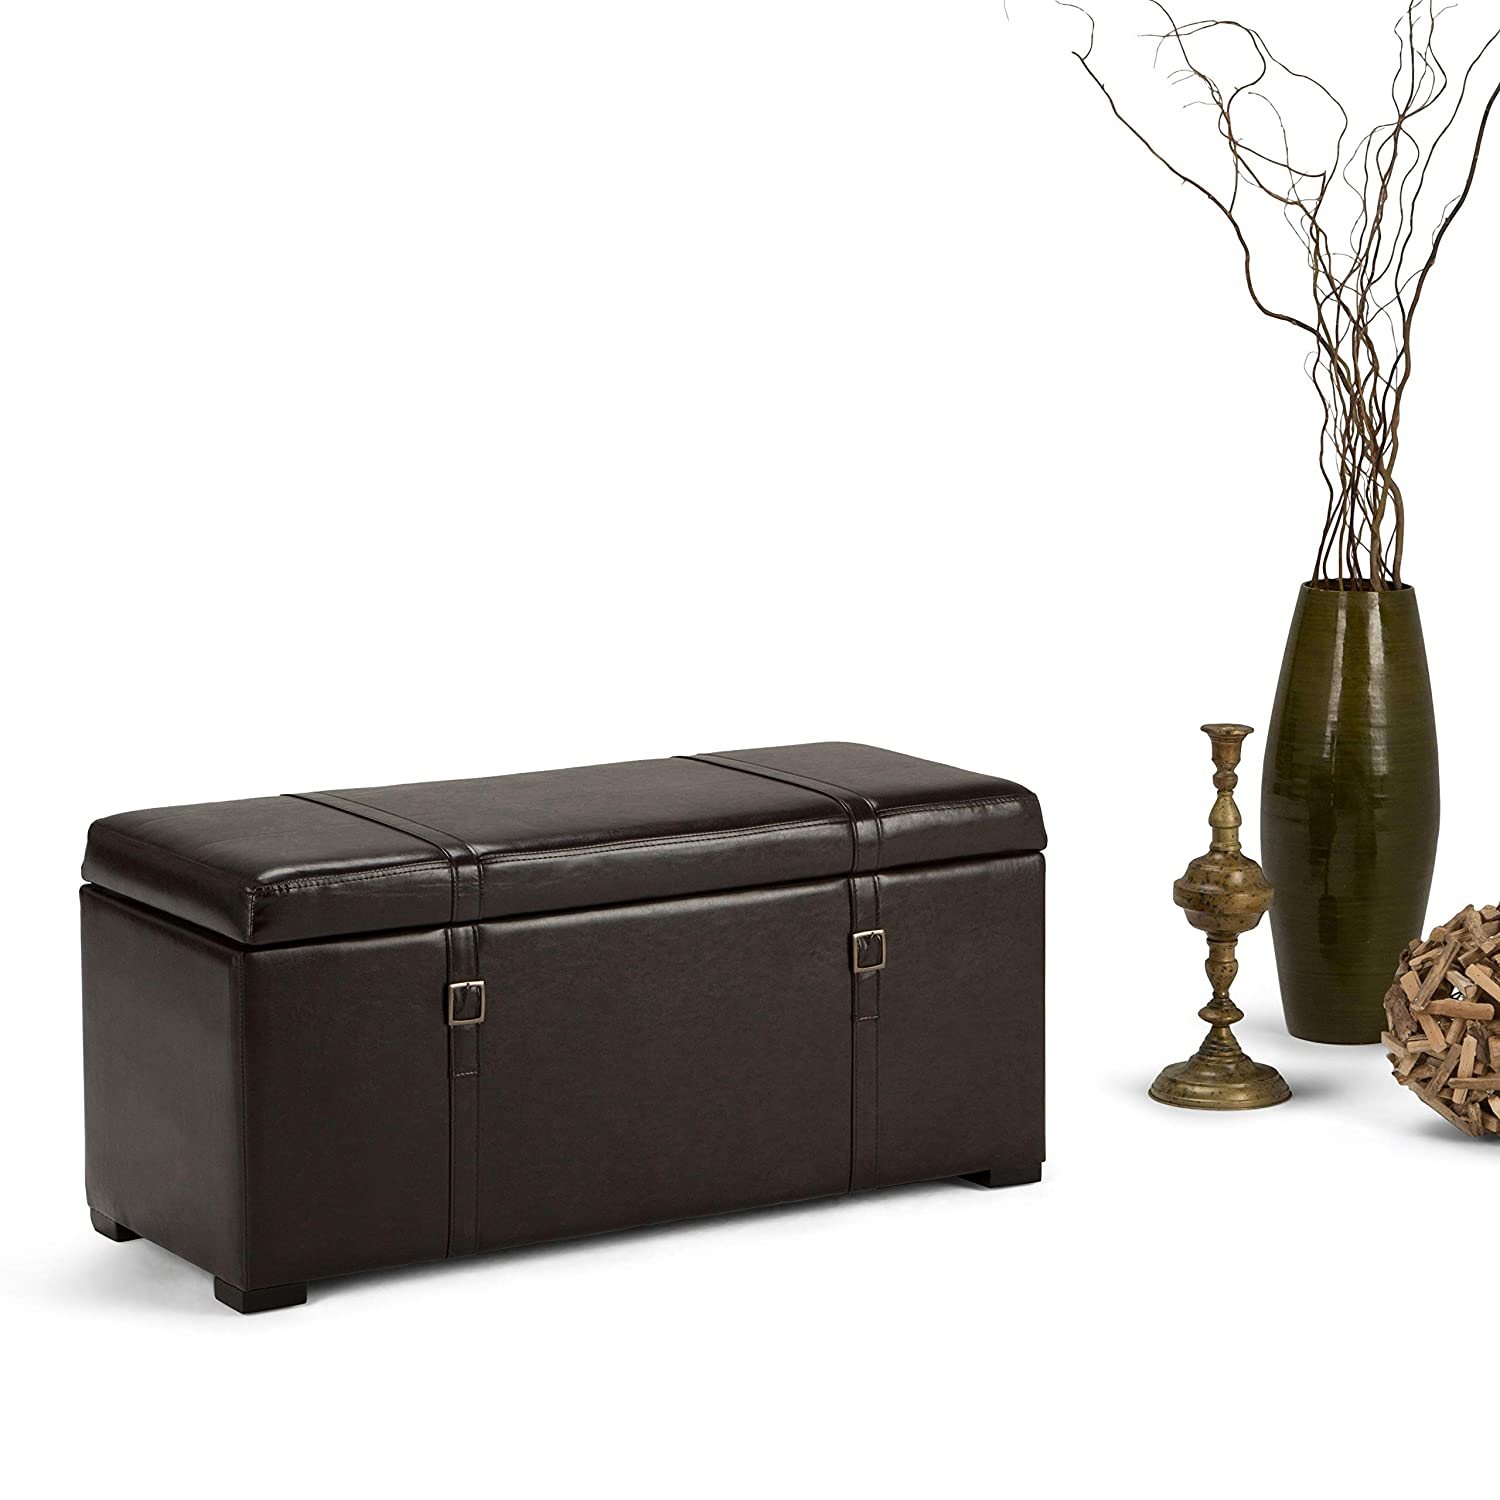 WyndenHall Waterford 5-piece Storage Ottoman Bench Black CCT Global Sourcing